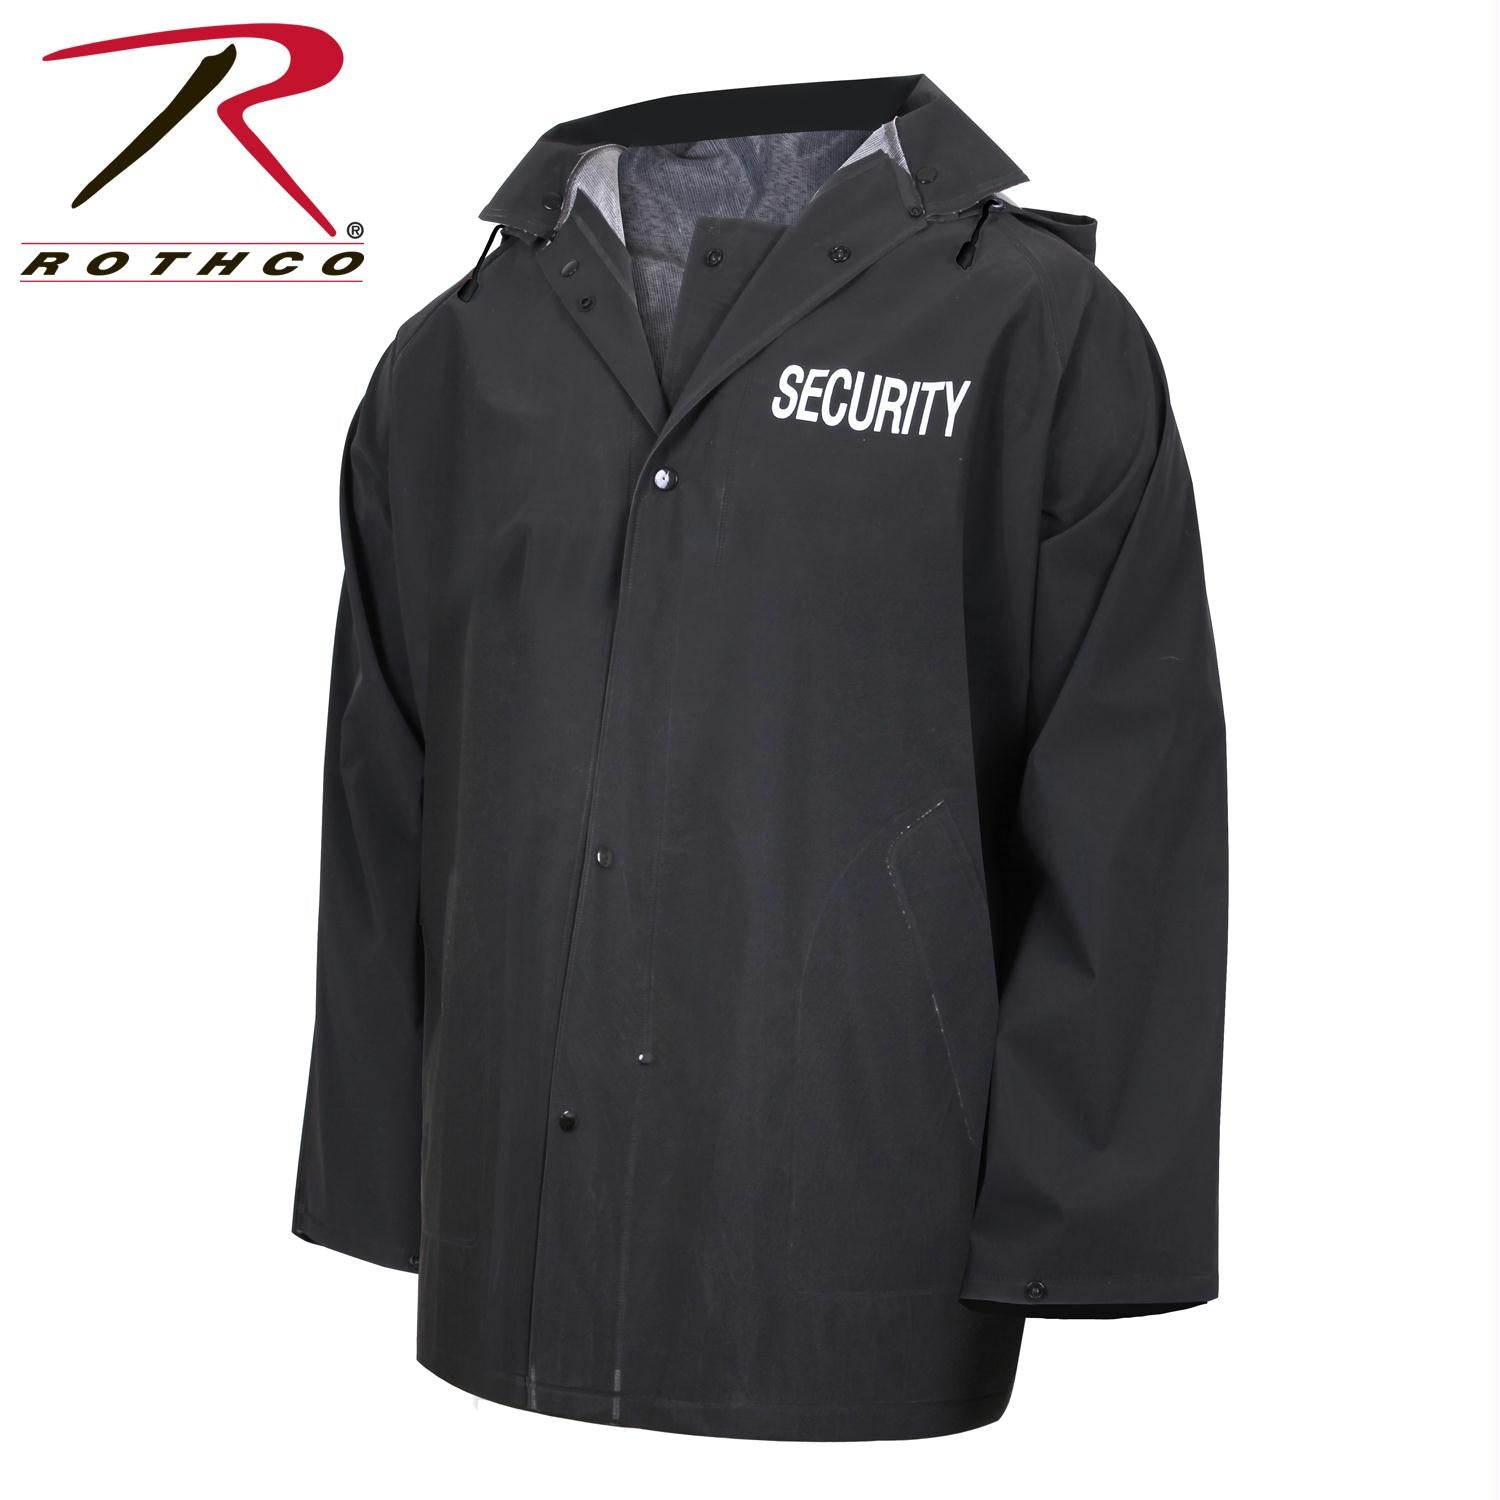 Rothco Security Rain Jacket - S